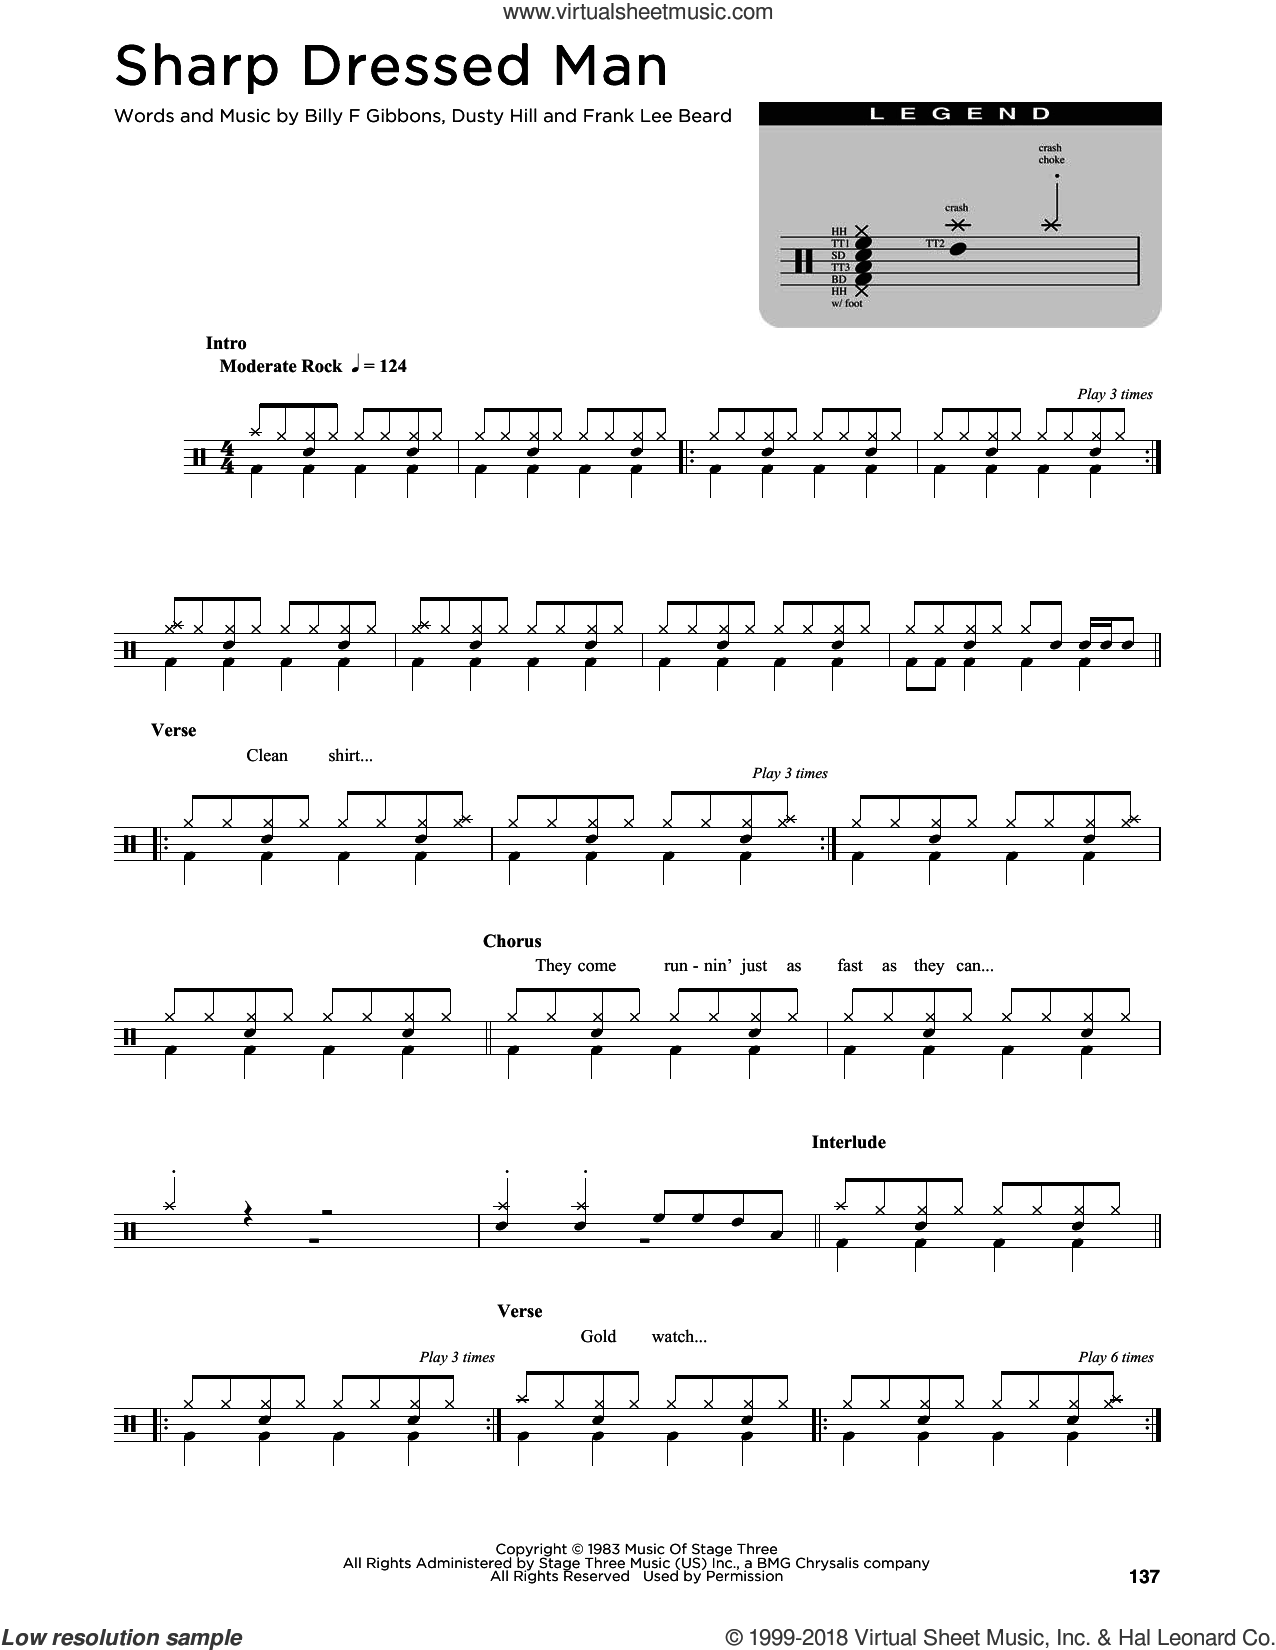 Sharp Dressed Man sheet music for drums (percussions) by ZZ Top, Billy Gibbons, Dusty Hill and Frank Beard, intermediate skill level